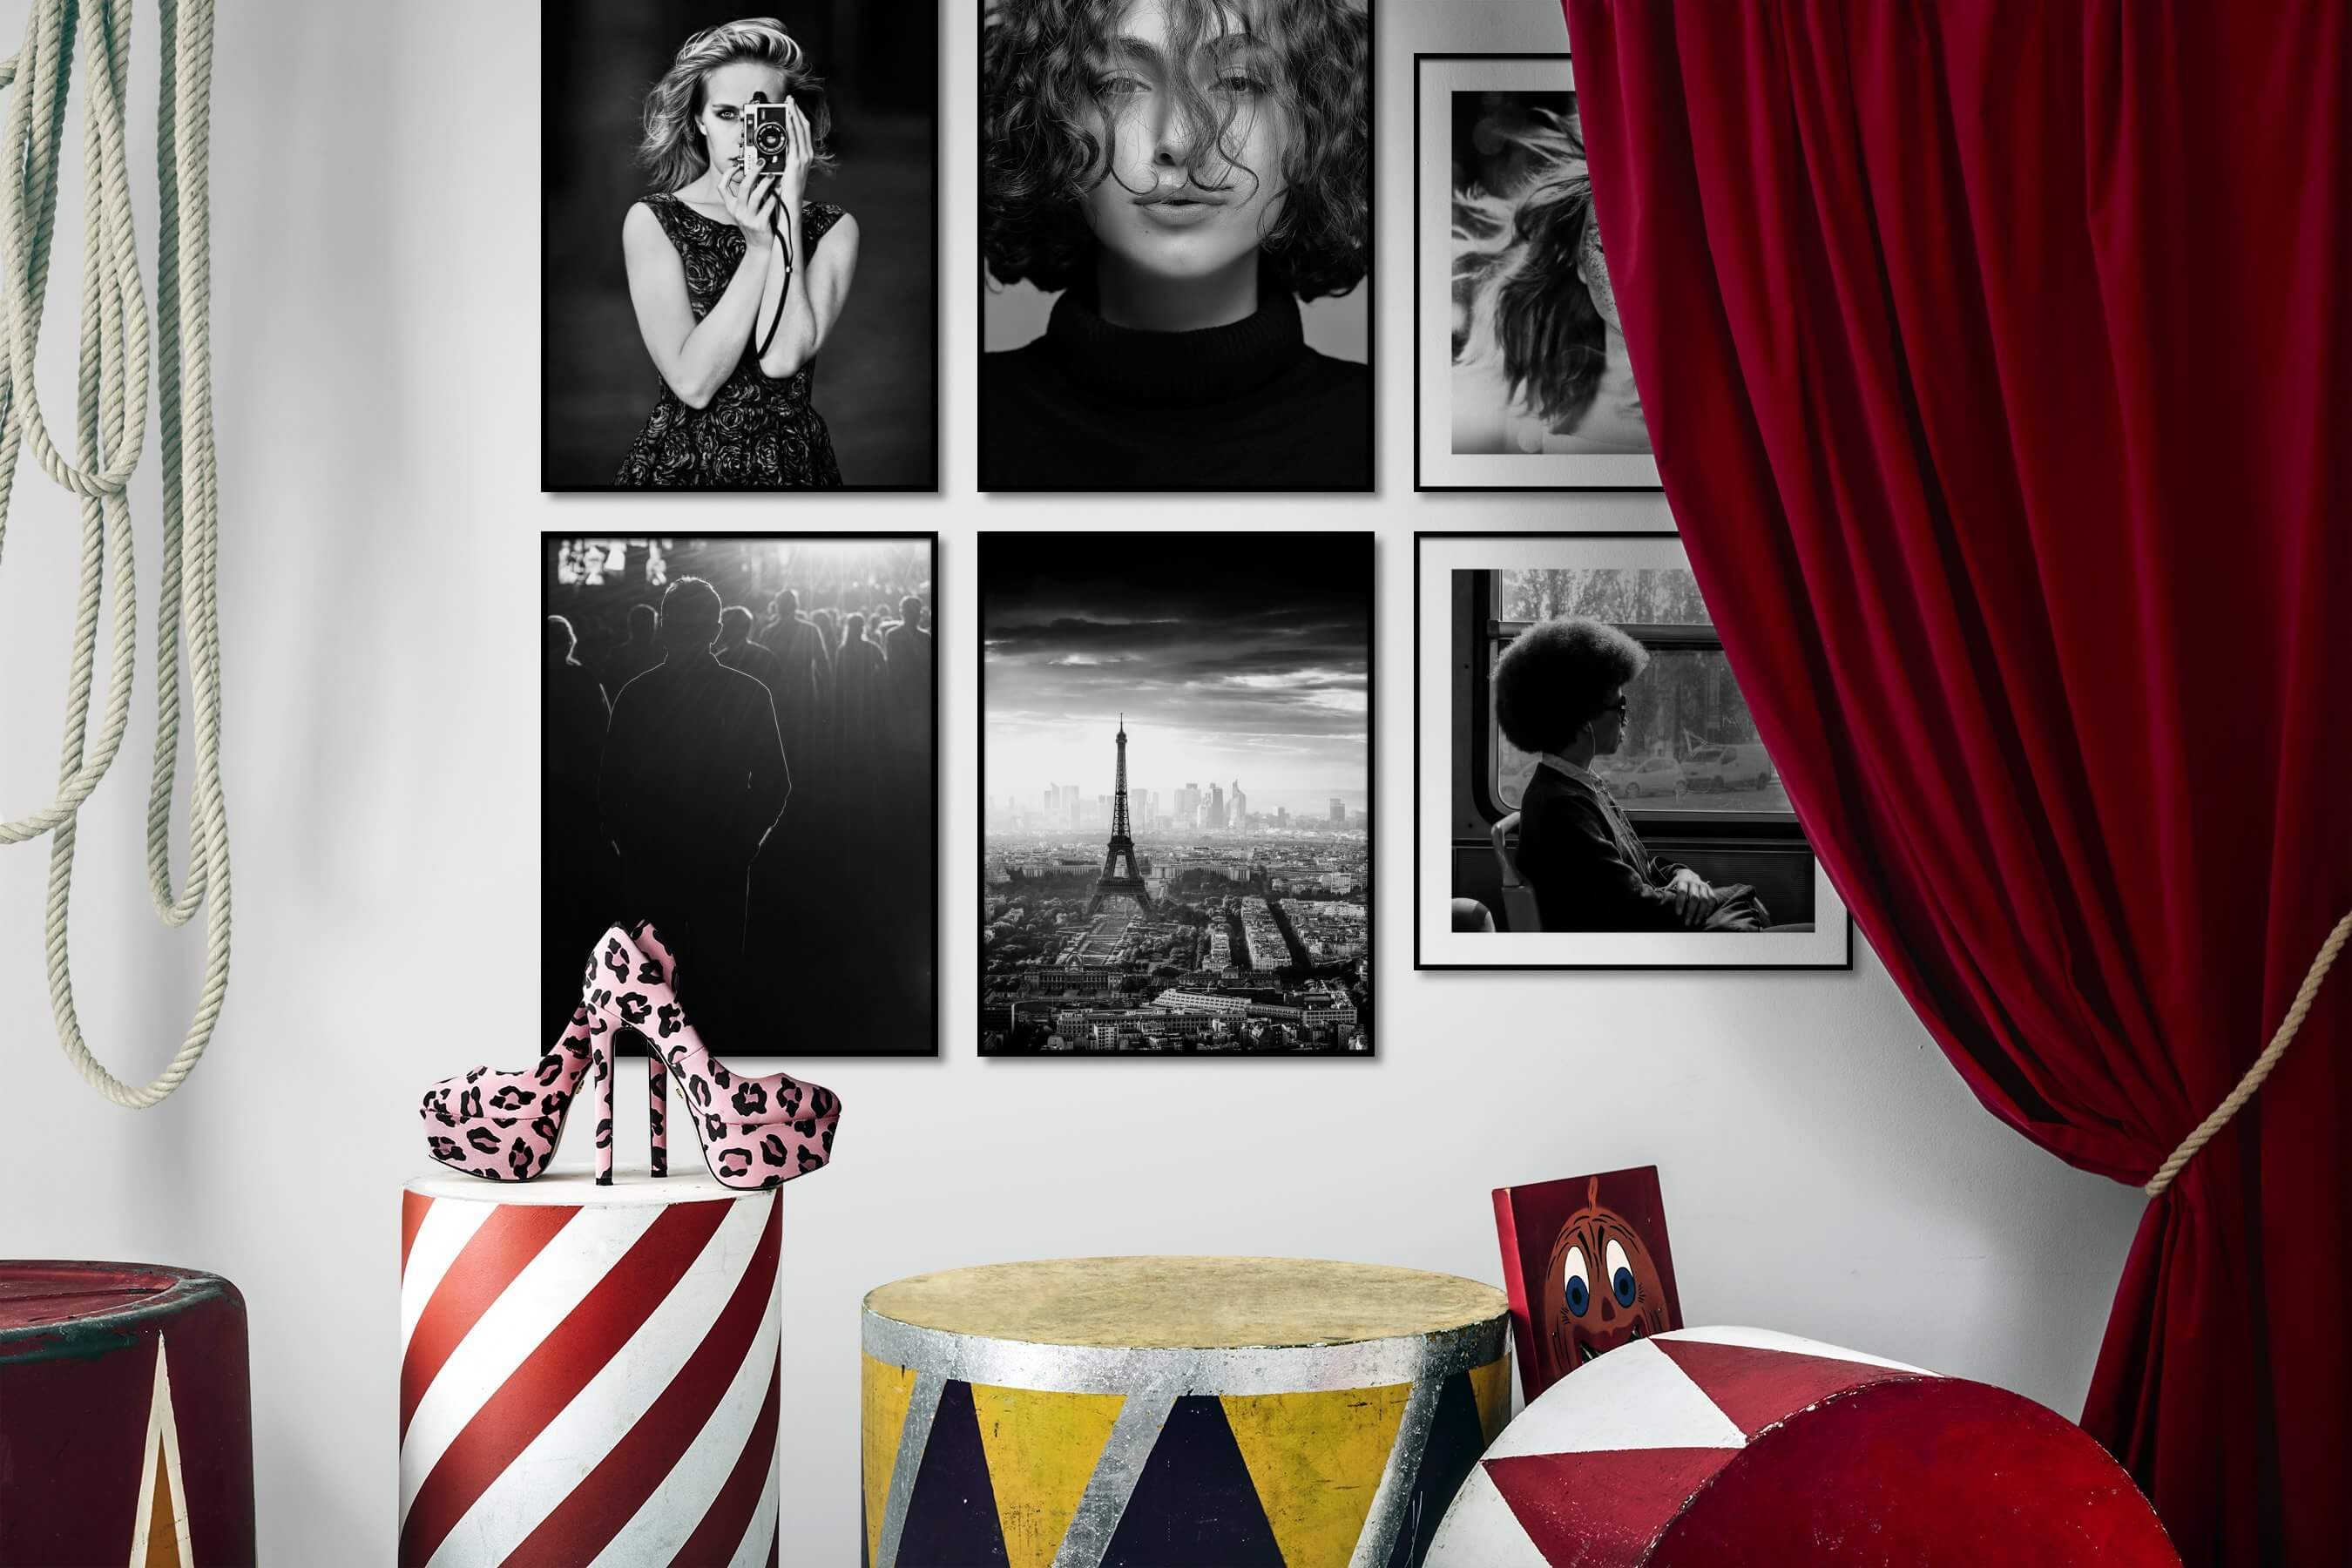 Gallery wall idea with six framed pictures arranged on a wall depicting Fashion & Beauty, Black & White, Vintage, and City Life